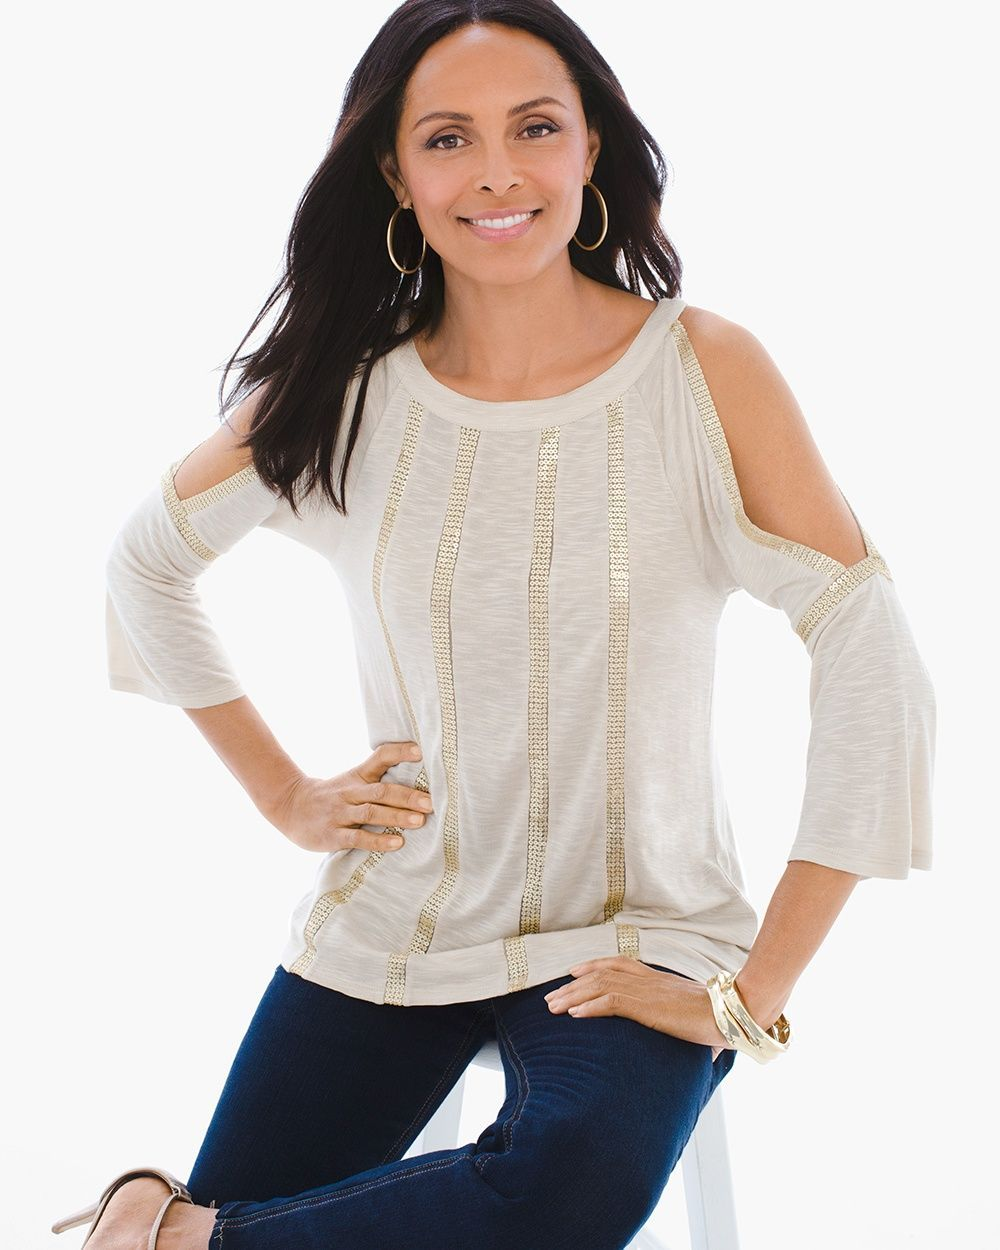 a111be632ab99 Chico s Women s Sequin Cold-Shoulder Top